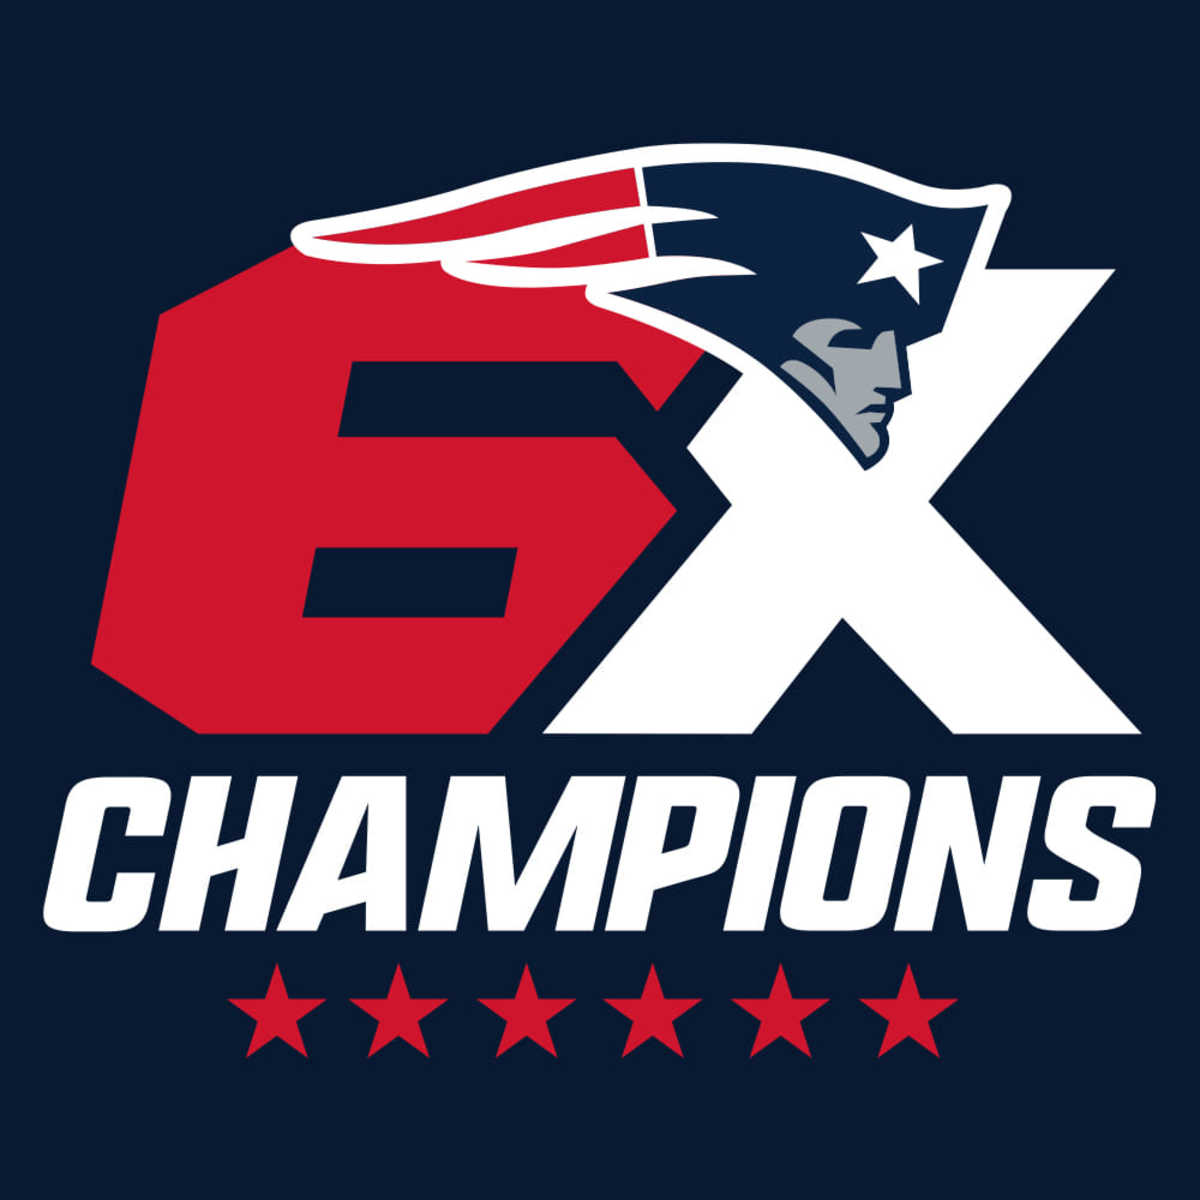 In 2015, the New England Patriots won the Super Bowl by defeating the Seattle Seahawks.